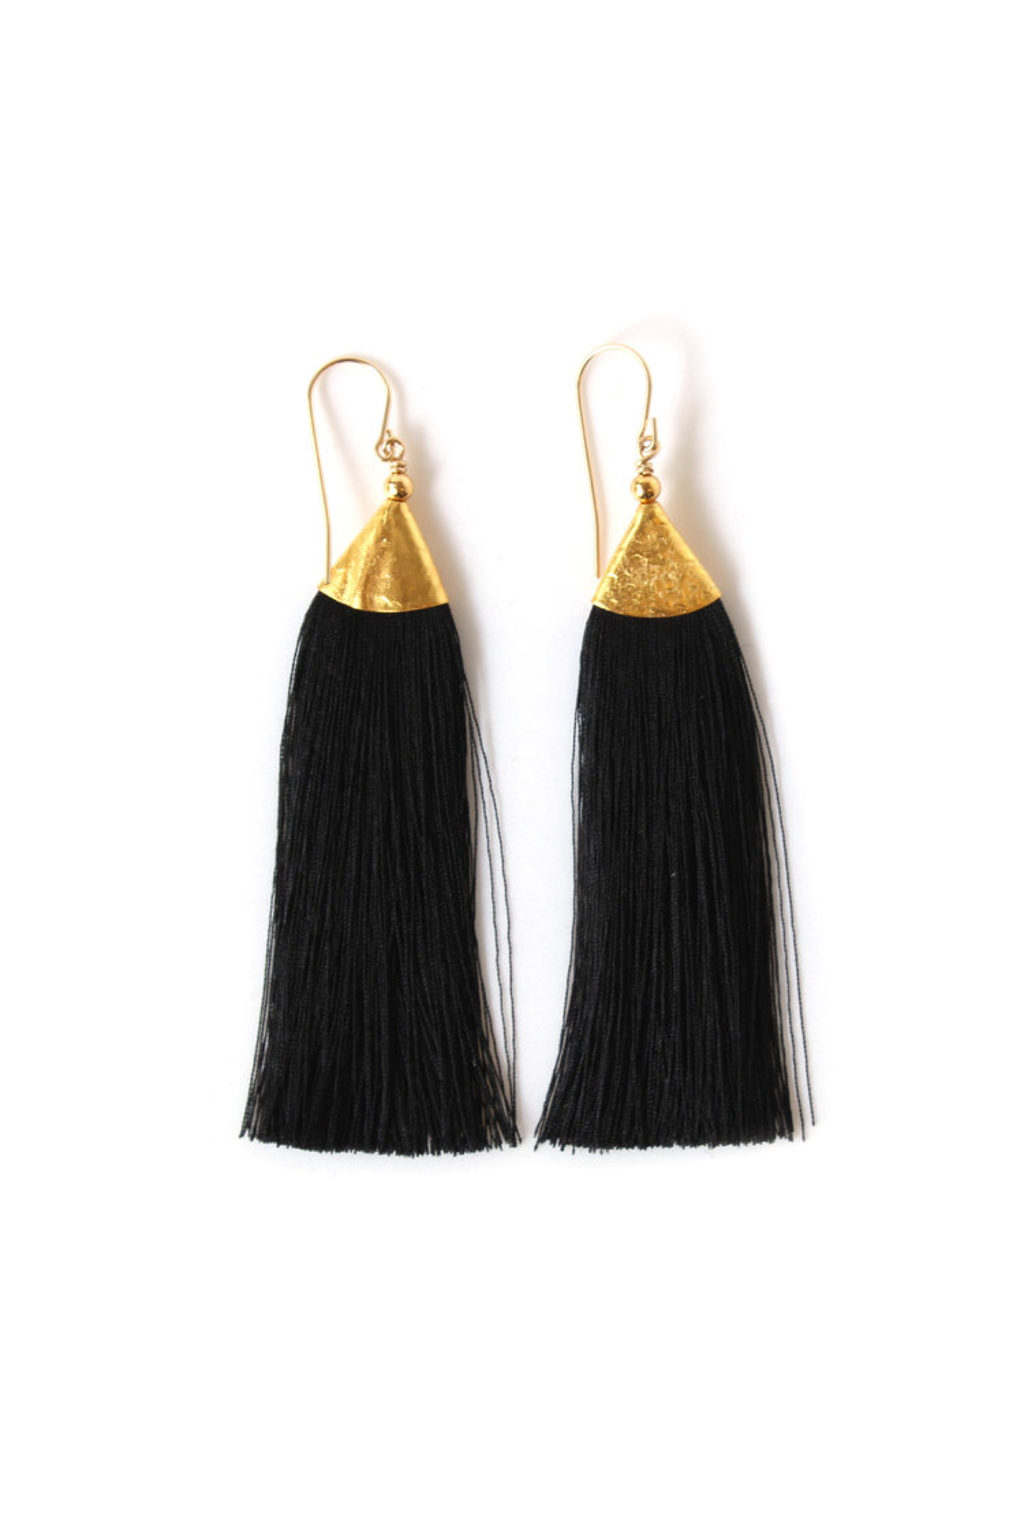 Black Mimi Tassel Earrings - ROSE MADE SHOP